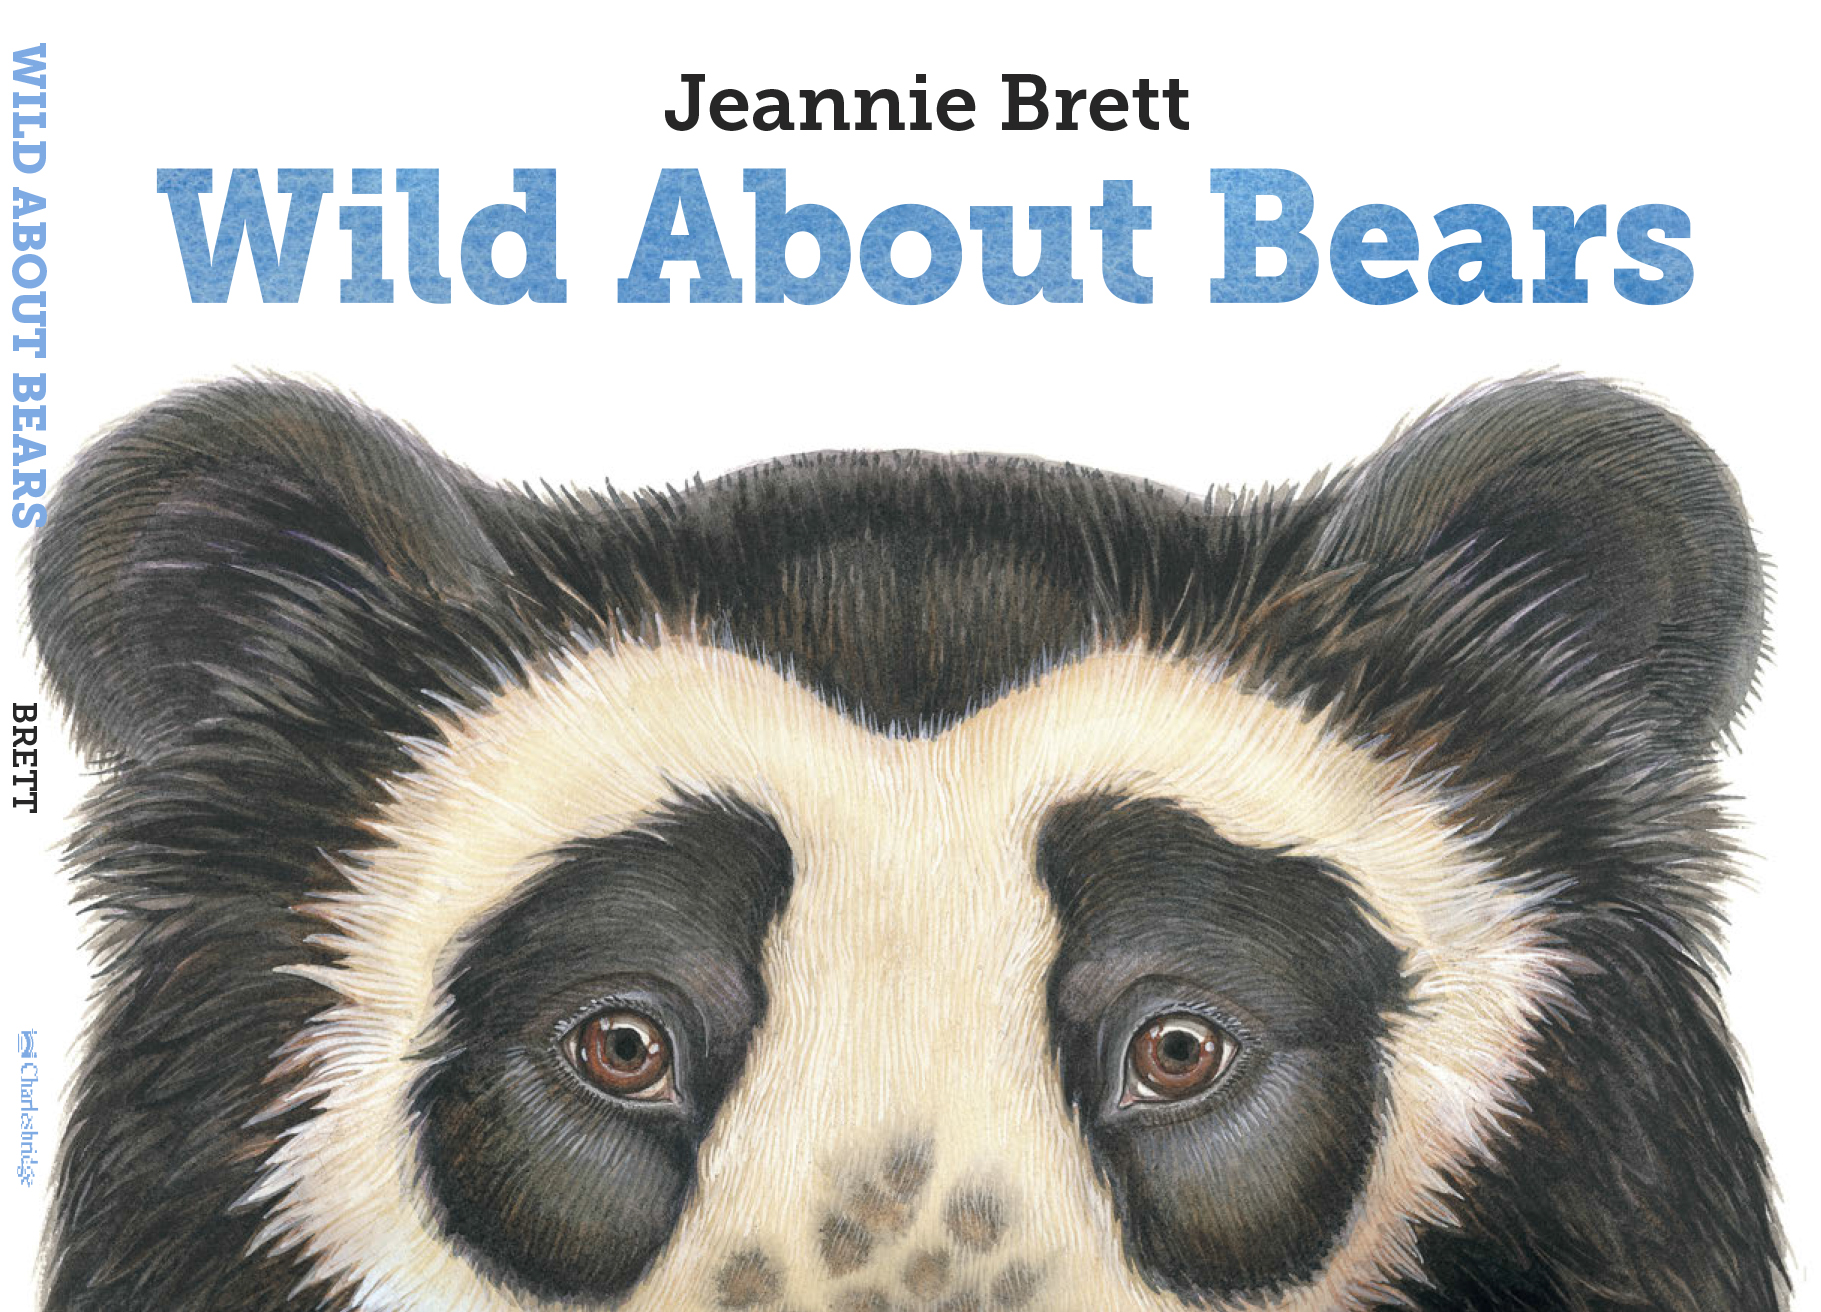 Wild About Bears | Jeannie Brett, Children's Book Author & Illustrator